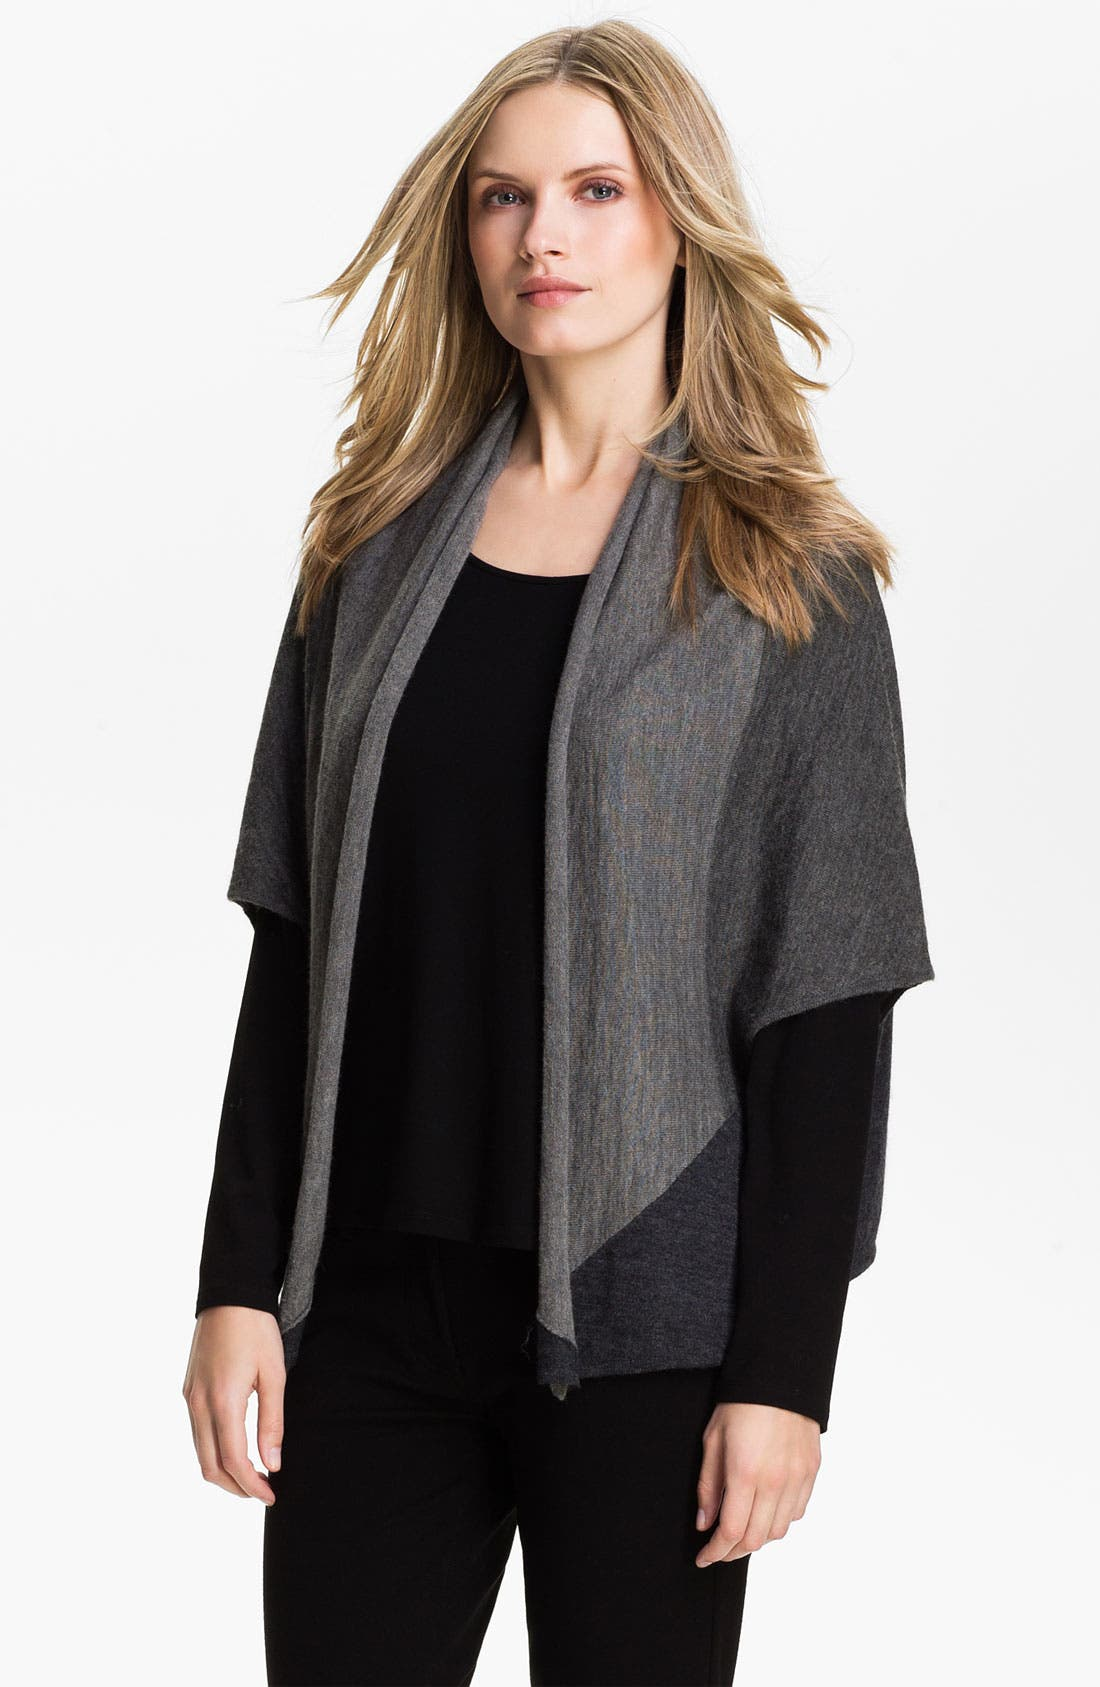 Alternate Image 1 Selected - Eileen Fisher Colorblock Alpaca Cardigan (Online Exclusive)